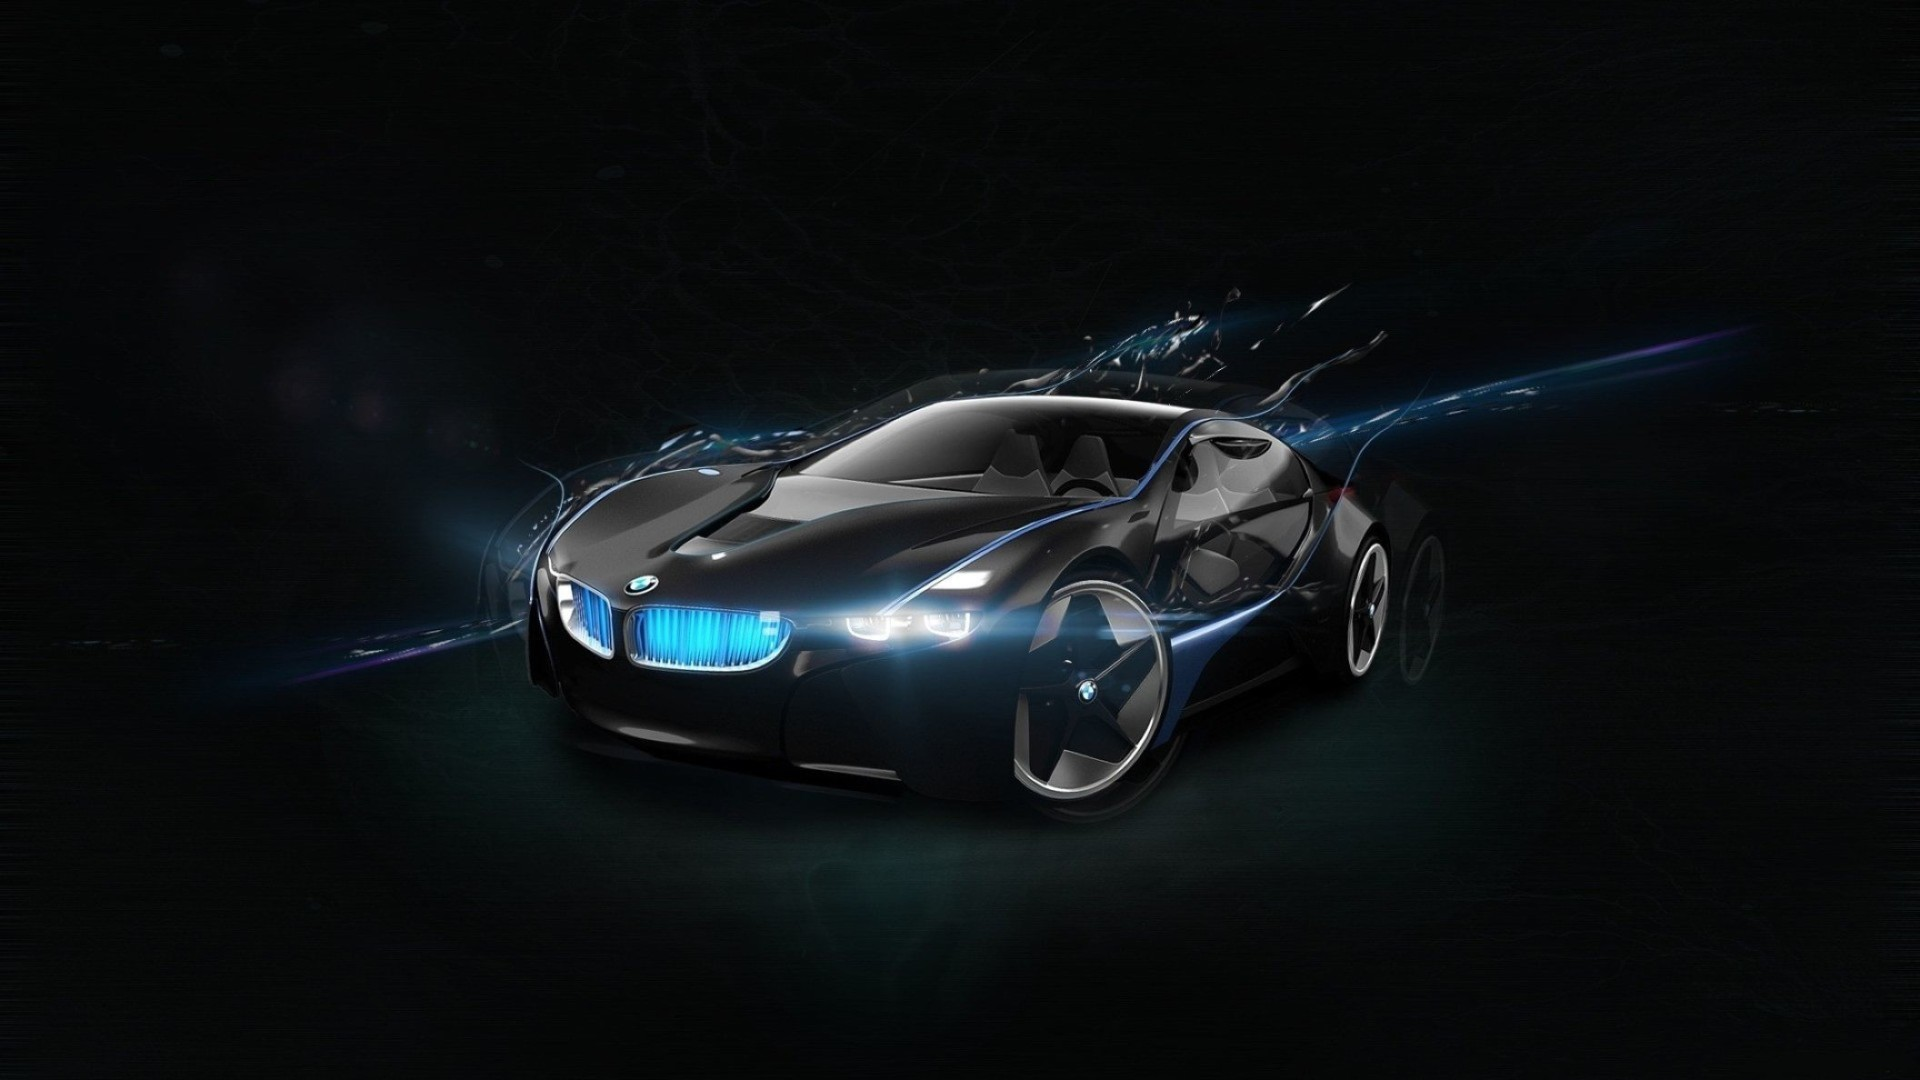 Bmw Vision Super Car Hd Wallpaper